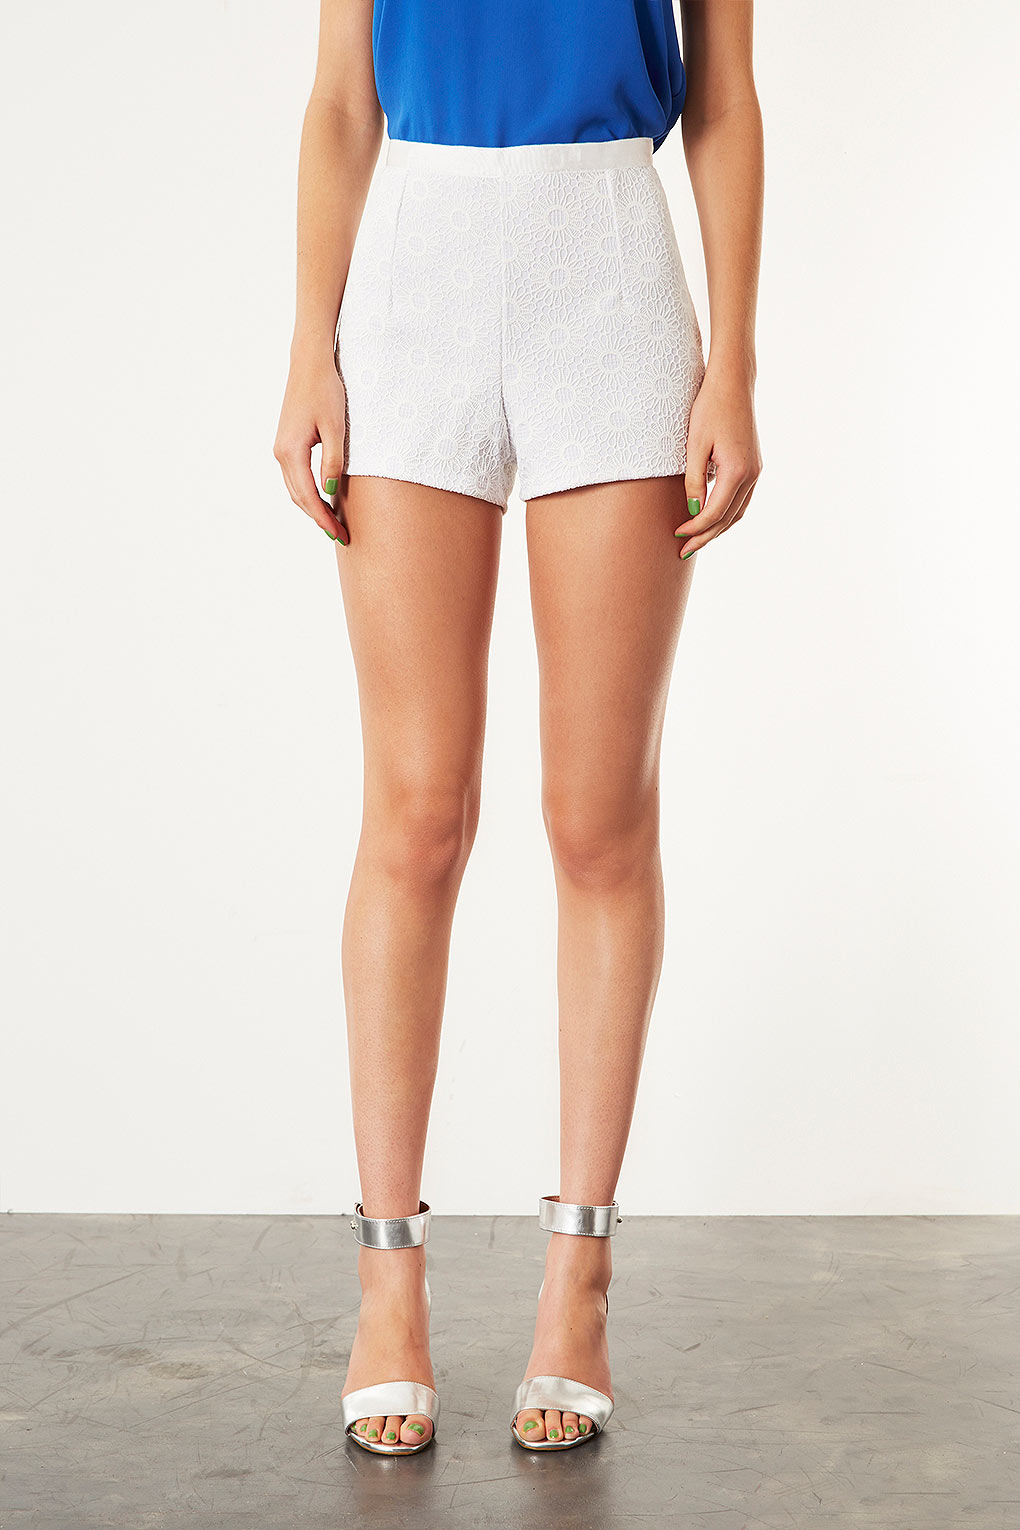 TOPSHOP Lace High Waisted Shorts in Natural - Lyst